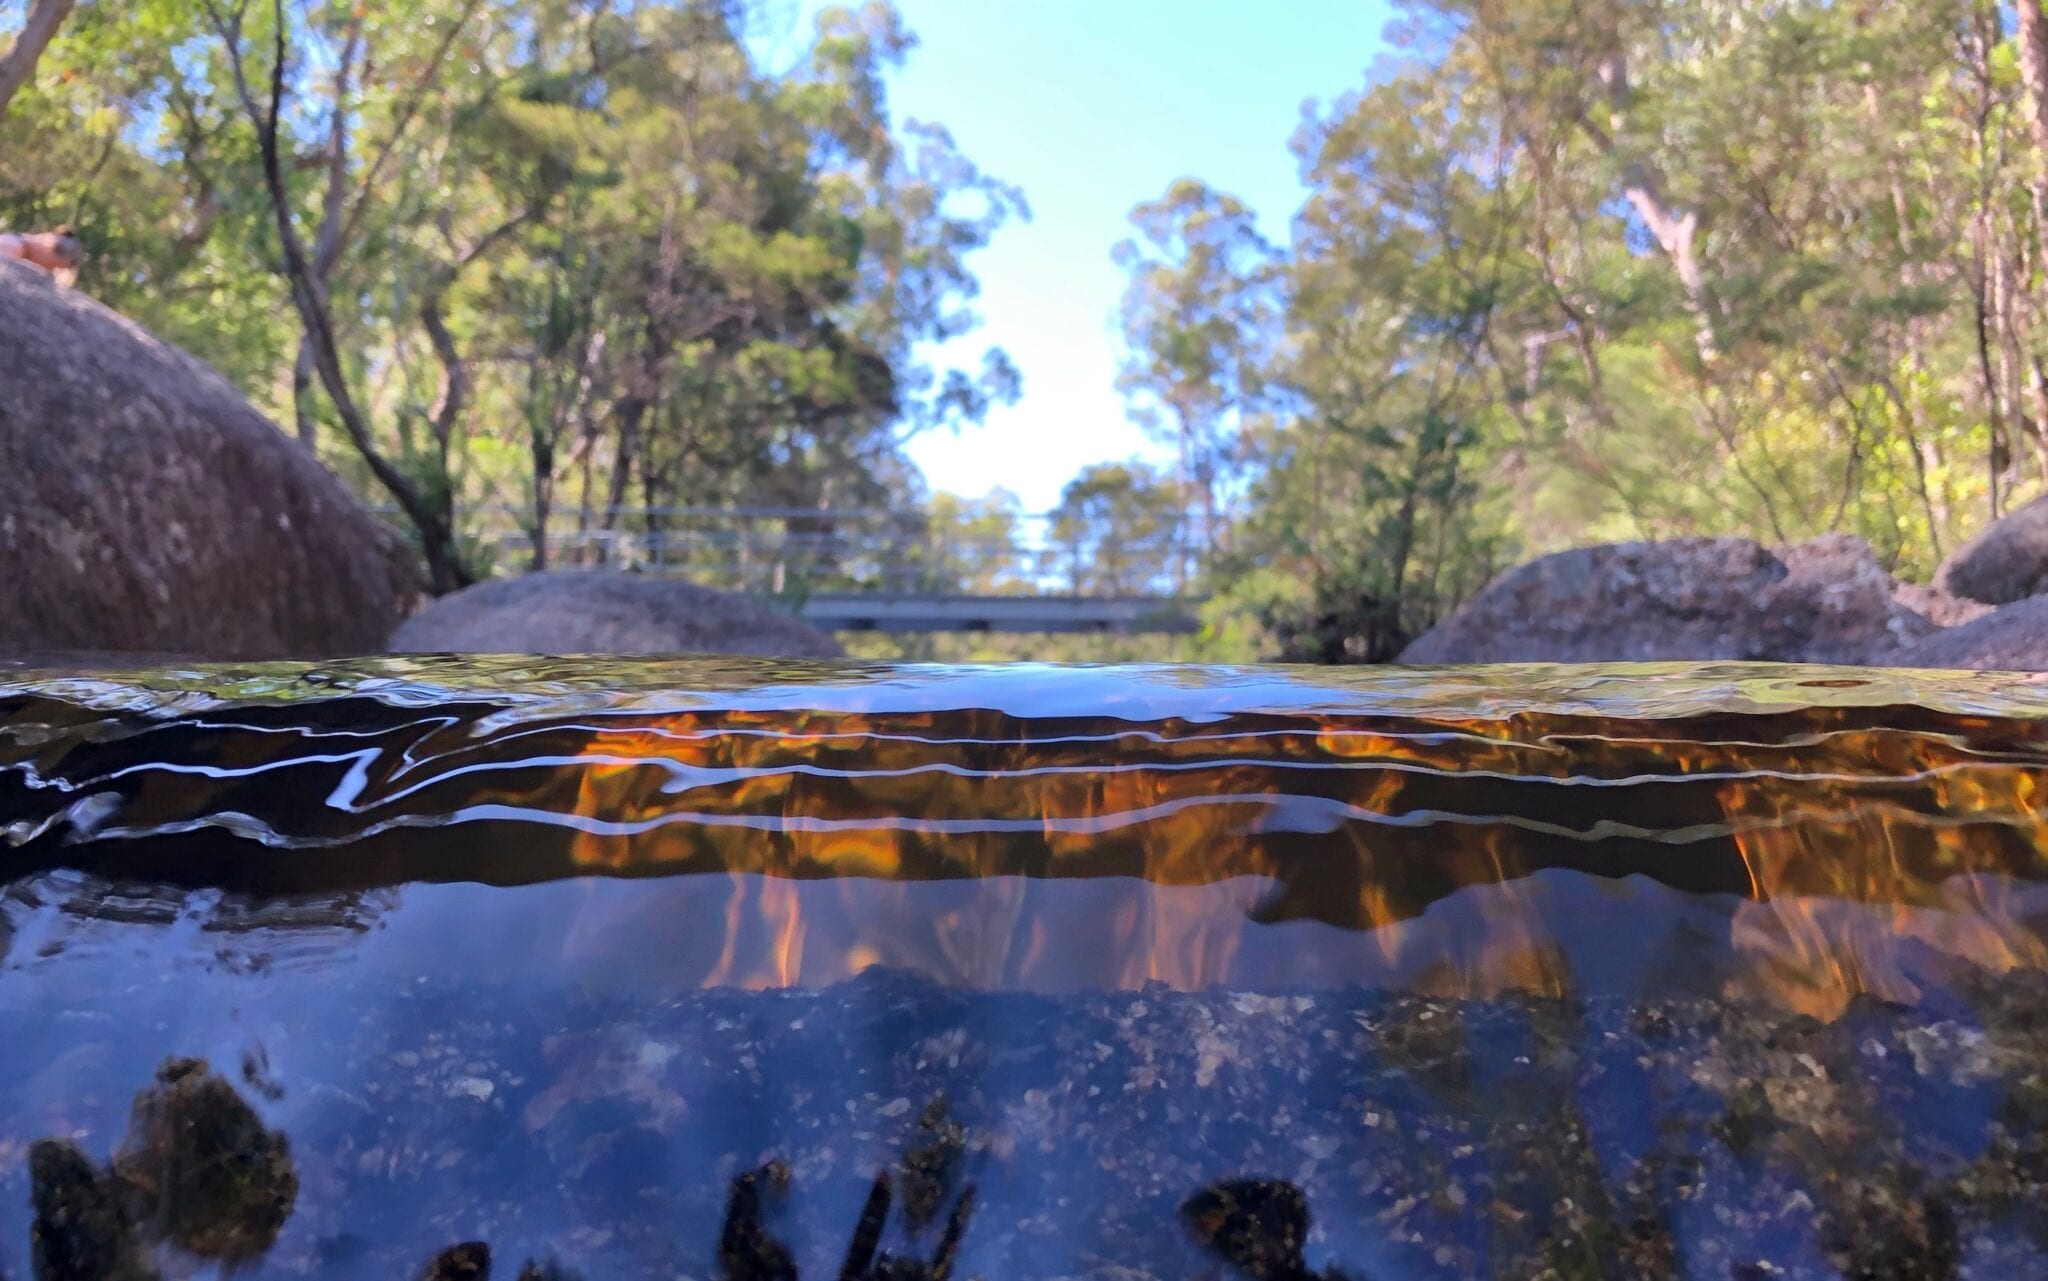 The weir at Mulligans Hut campground, Gibraltar Range National Park.